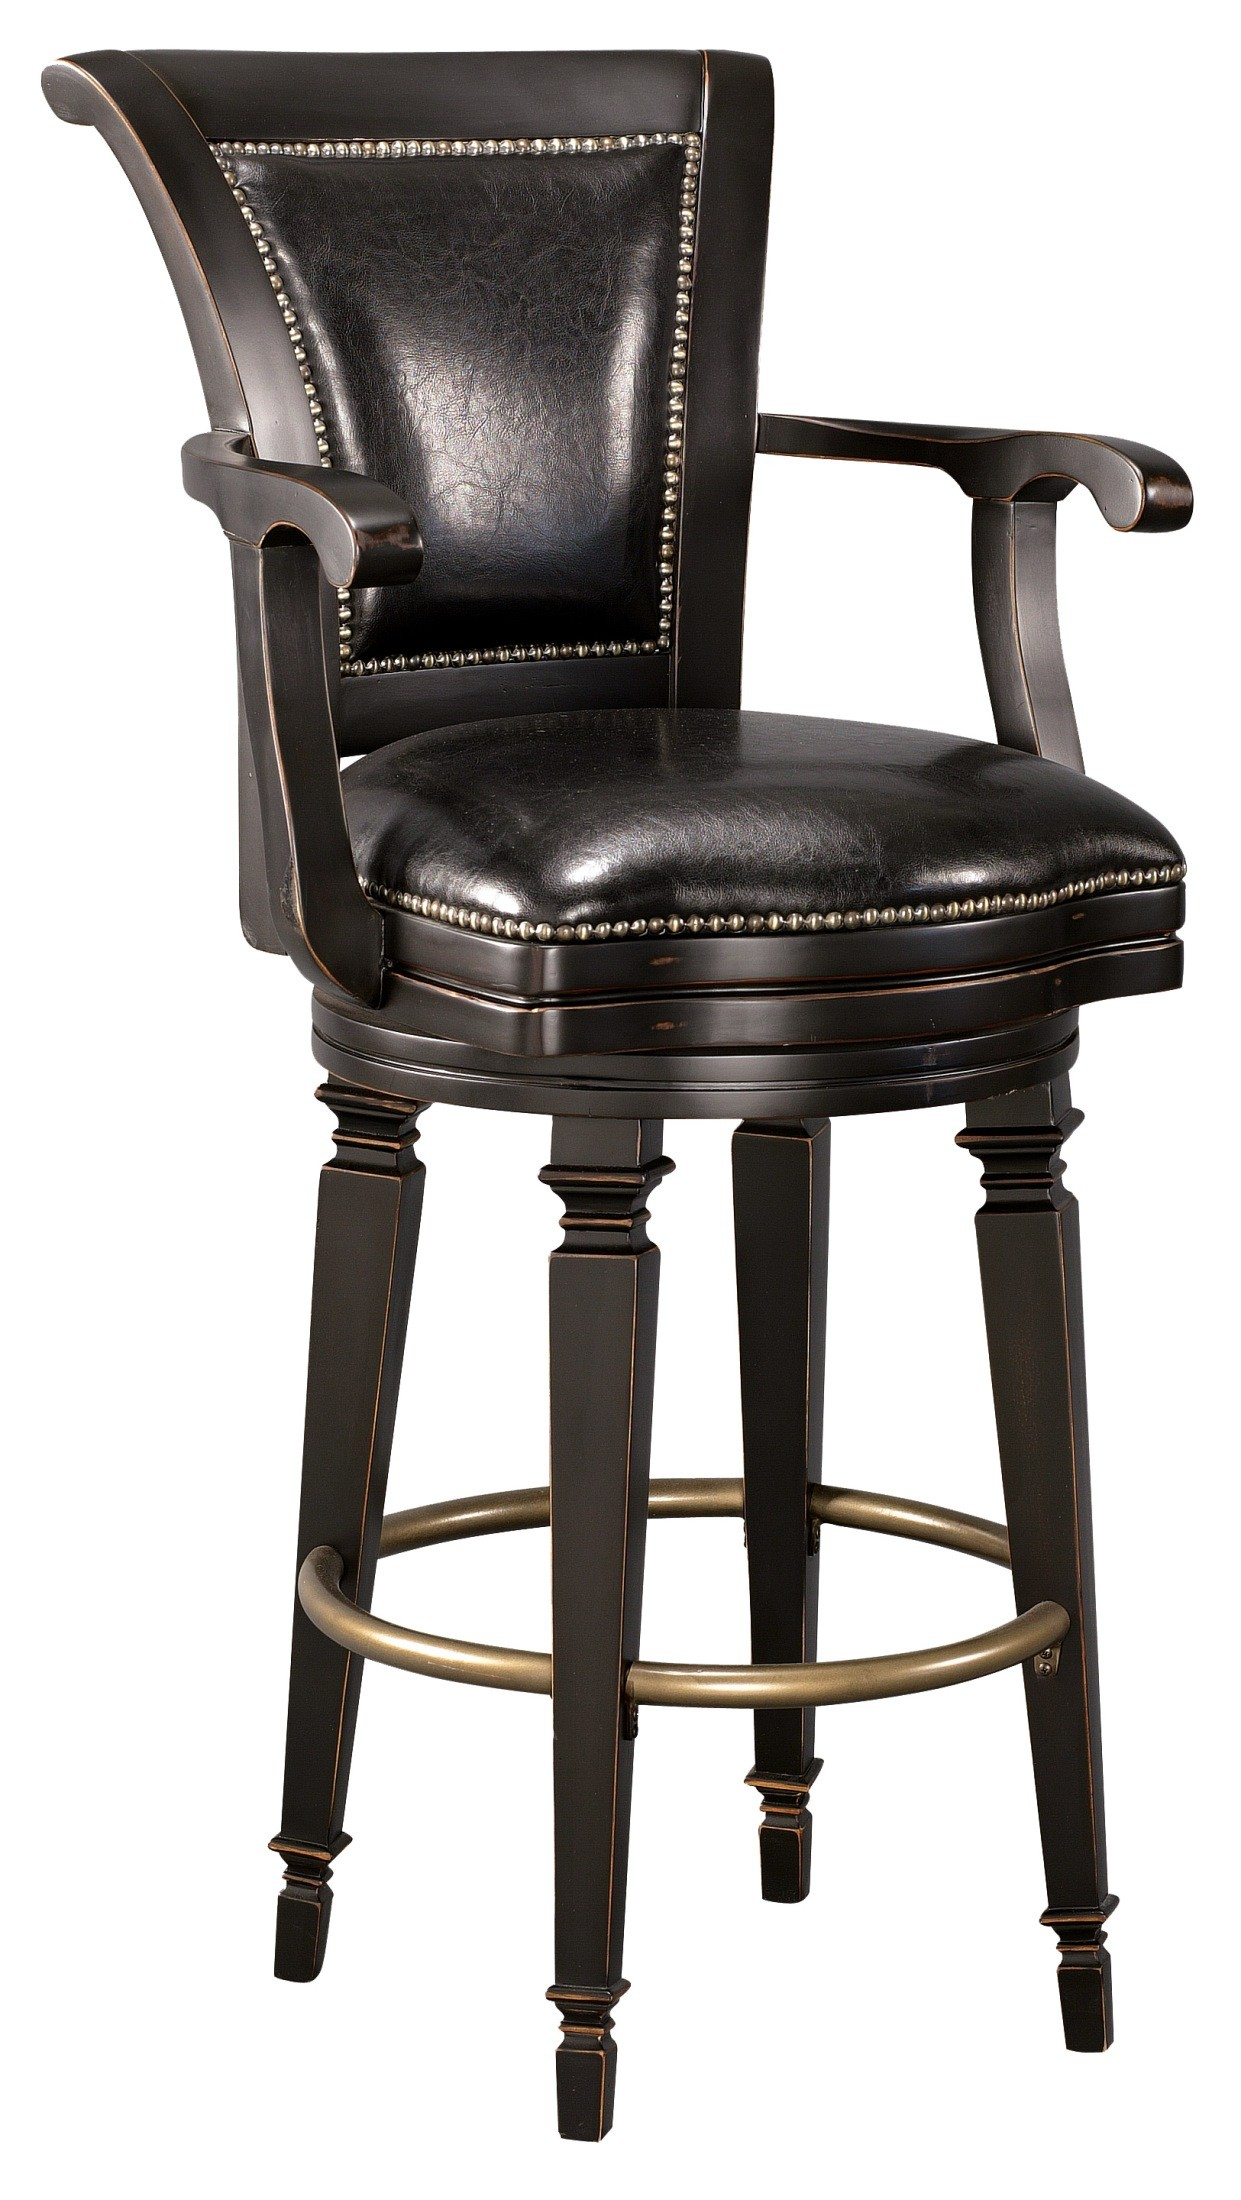 northport bar stool from howard miller 697009 coleman. Black Bedroom Furniture Sets. Home Design Ideas